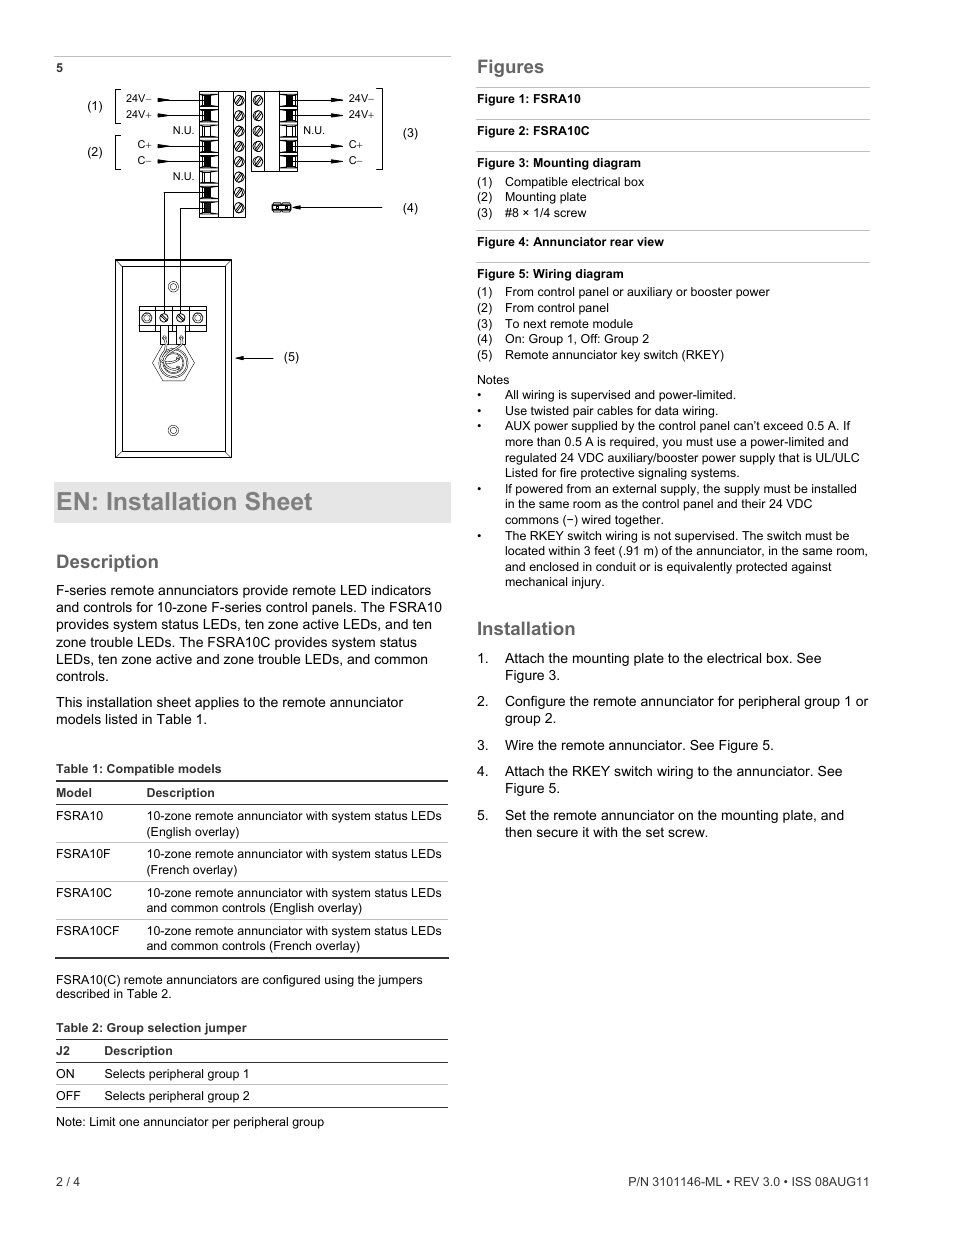 En Installation Sheet Description Figures Edwards Signaling F Zone Wiring Box Series Remote Annunciator Manuel Dutilisation Page 2 4